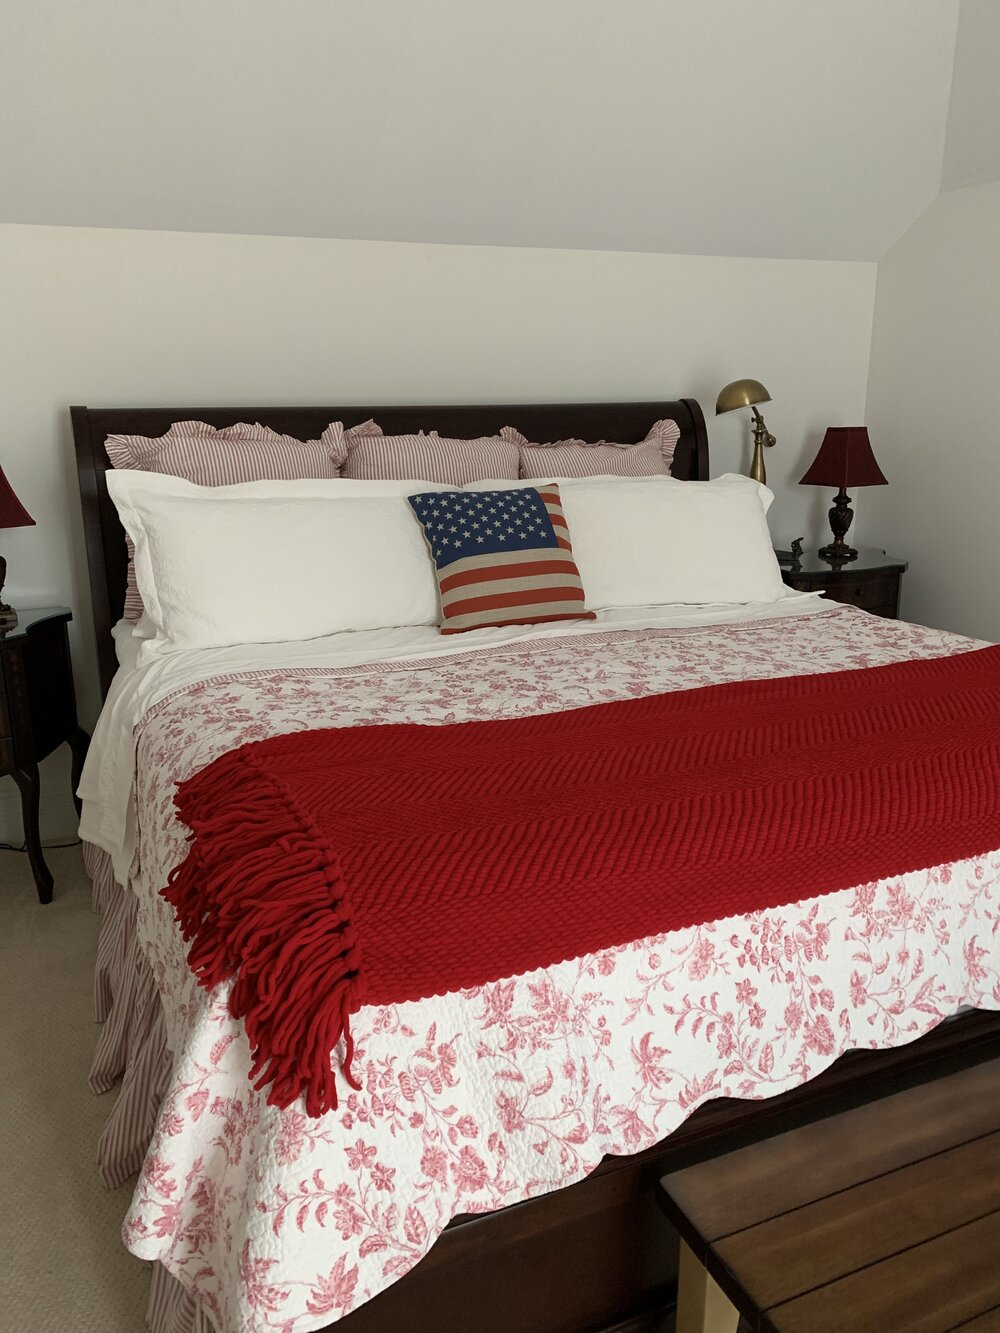 Here's a cute flag pillow on my red and white guest bedroom bed.